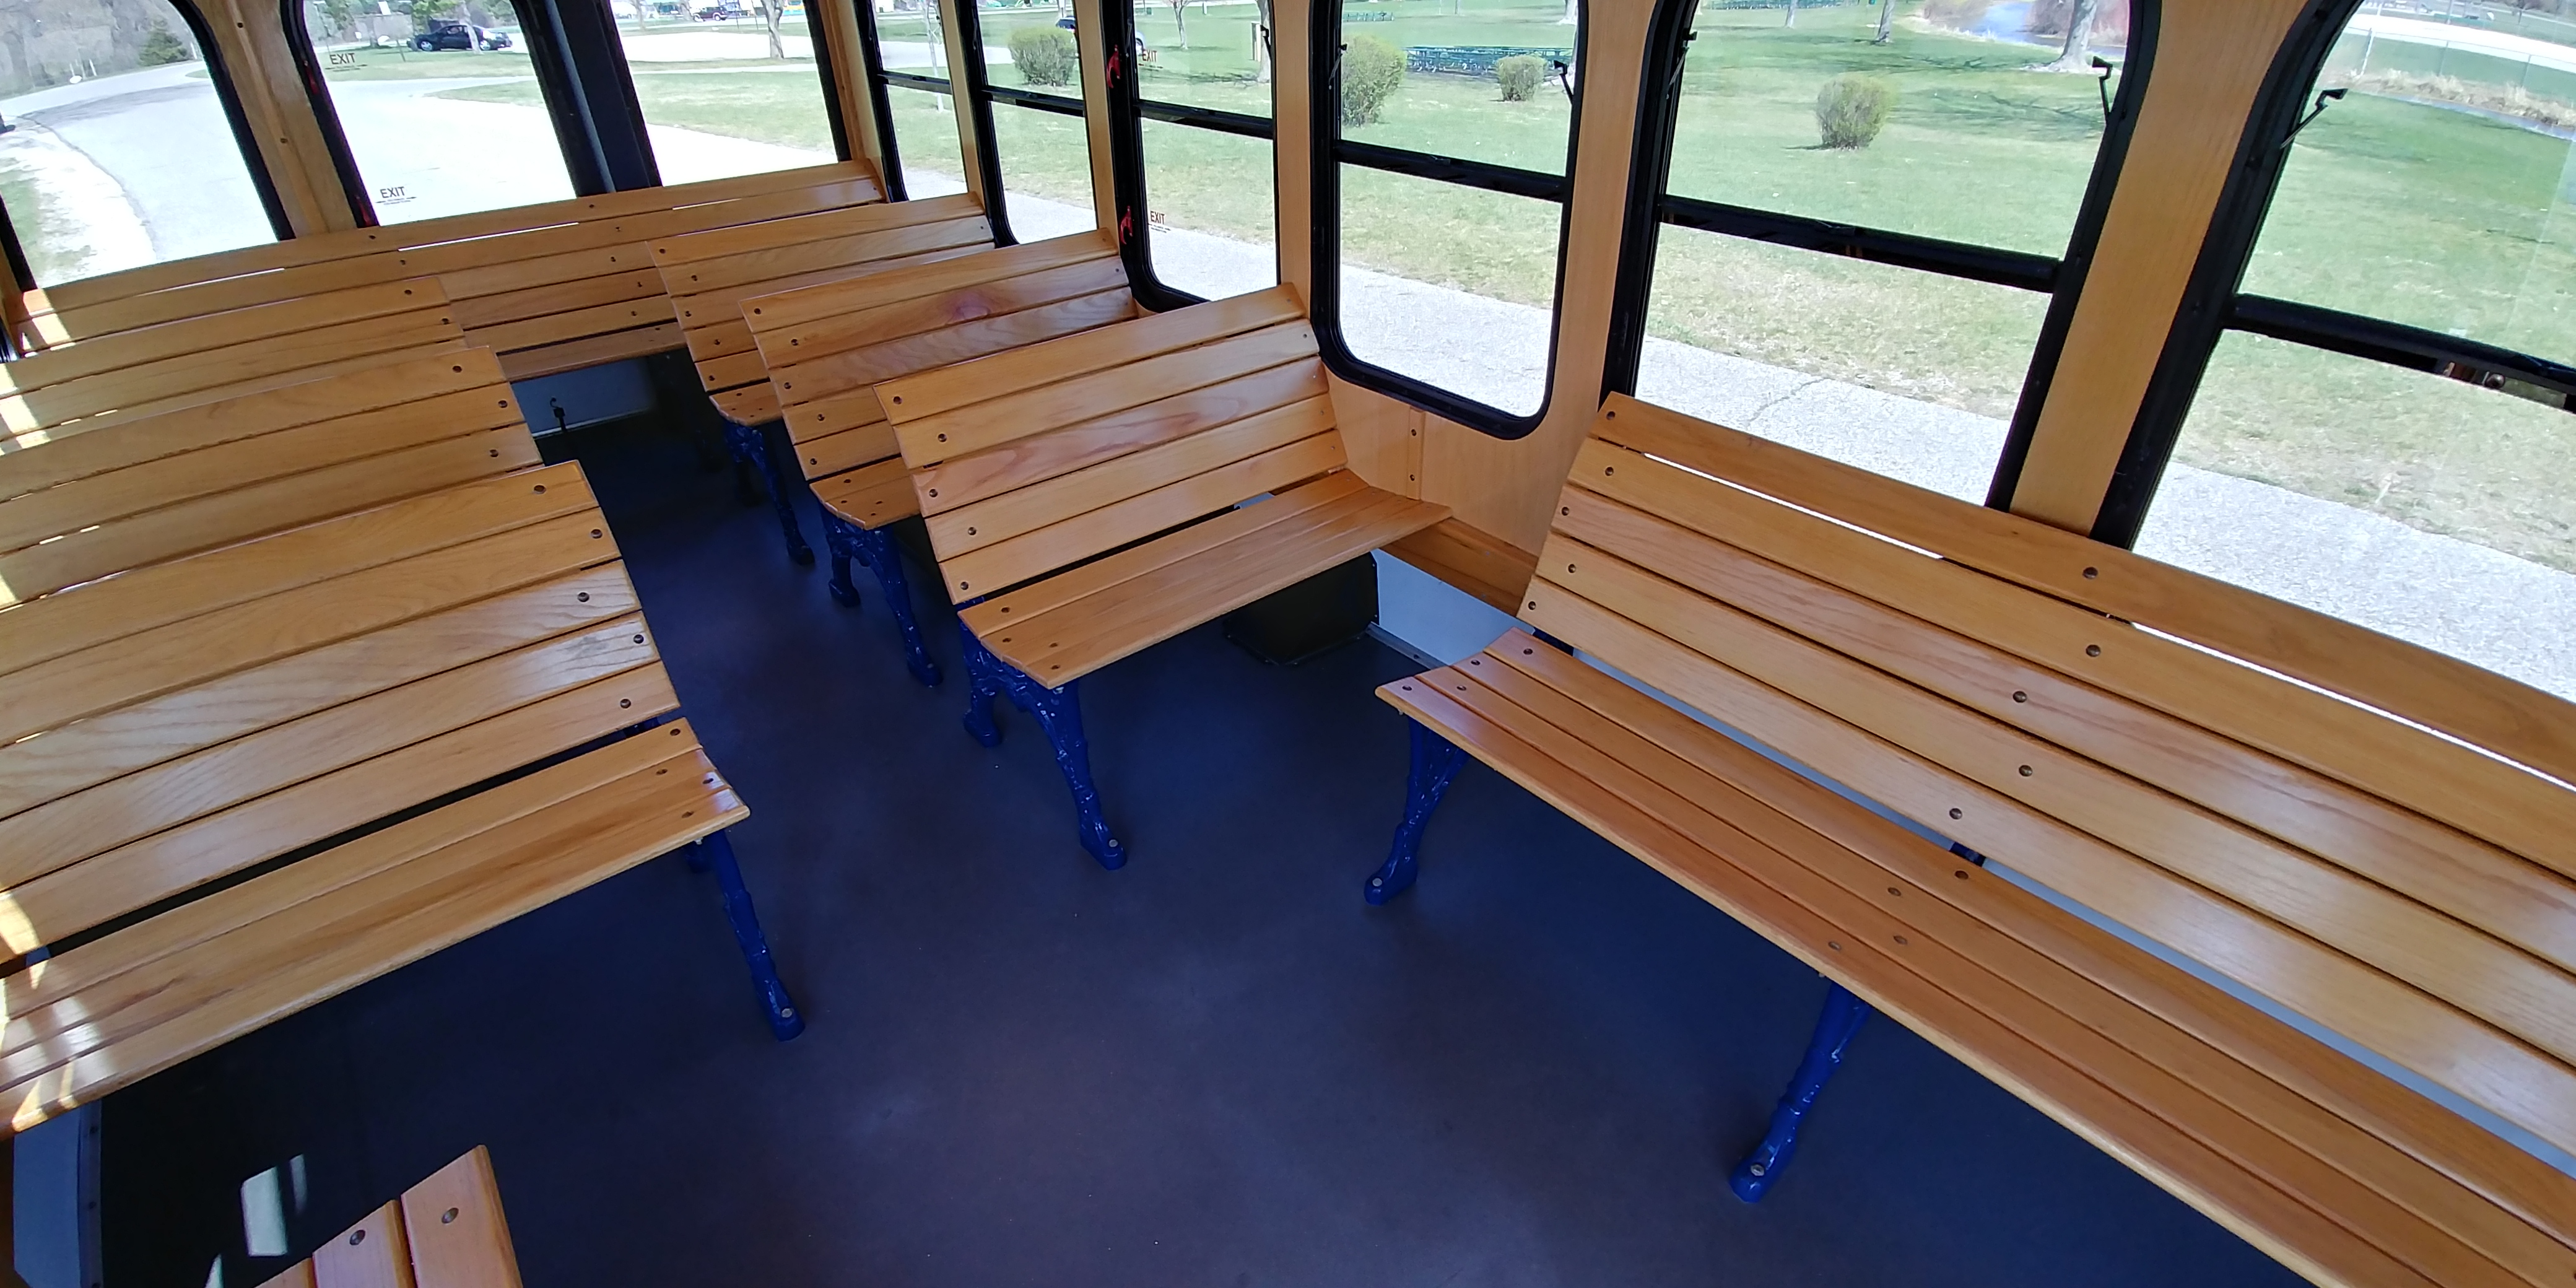 24 Passenger Trolley Interior 4